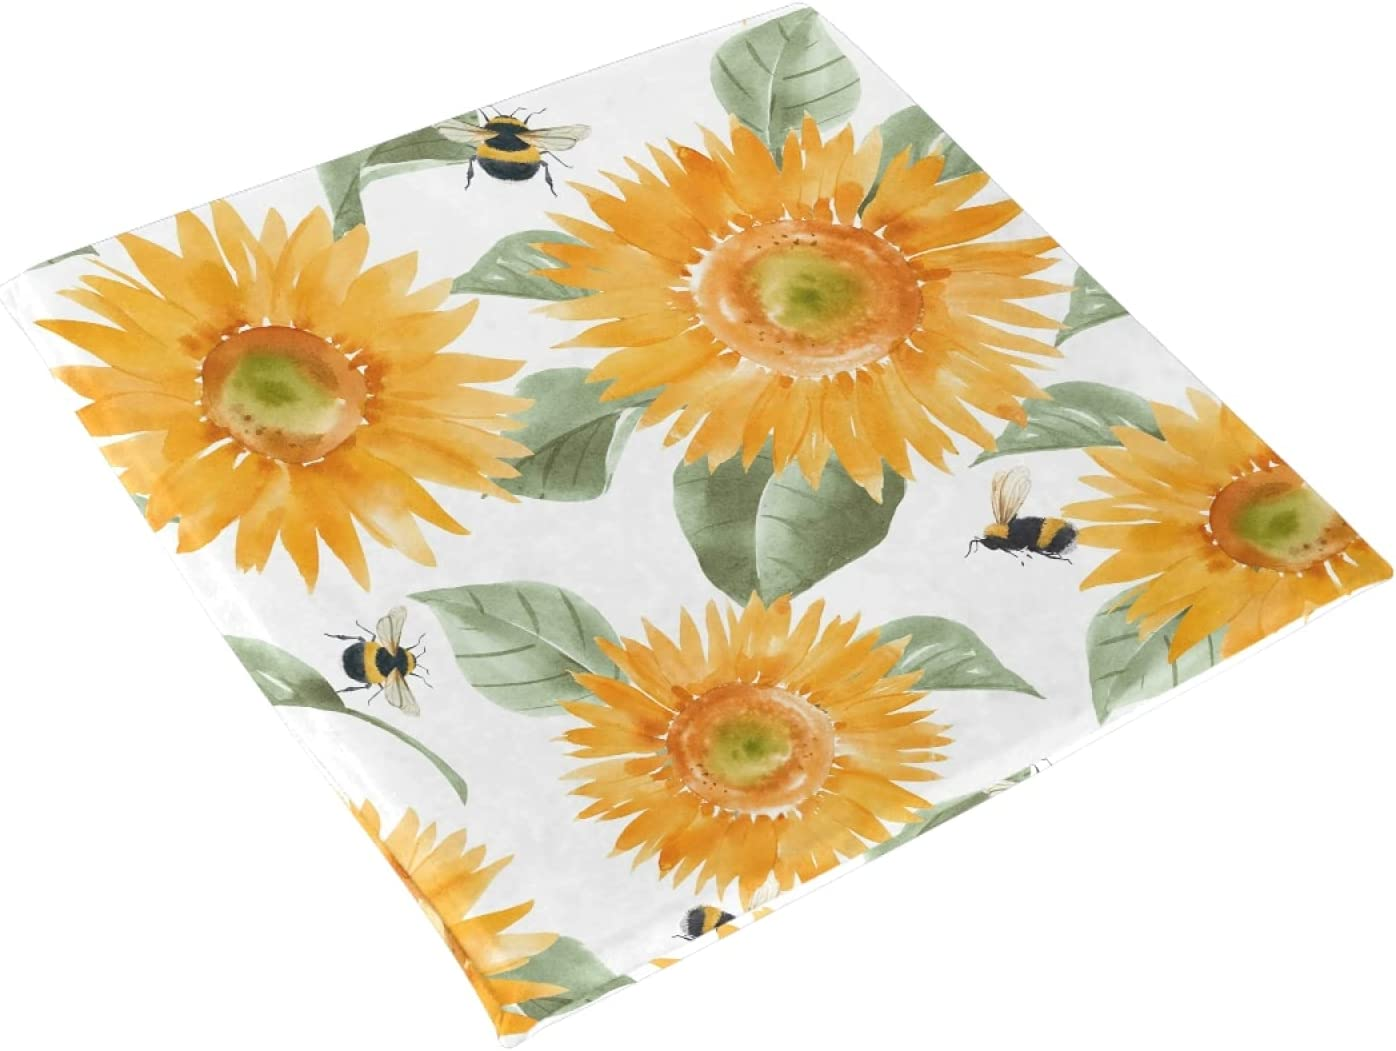 xigua Ranking TOP17 Seat Cushion Beautiful Al sold out. Watercolor Hand C Sunflowers Drawn